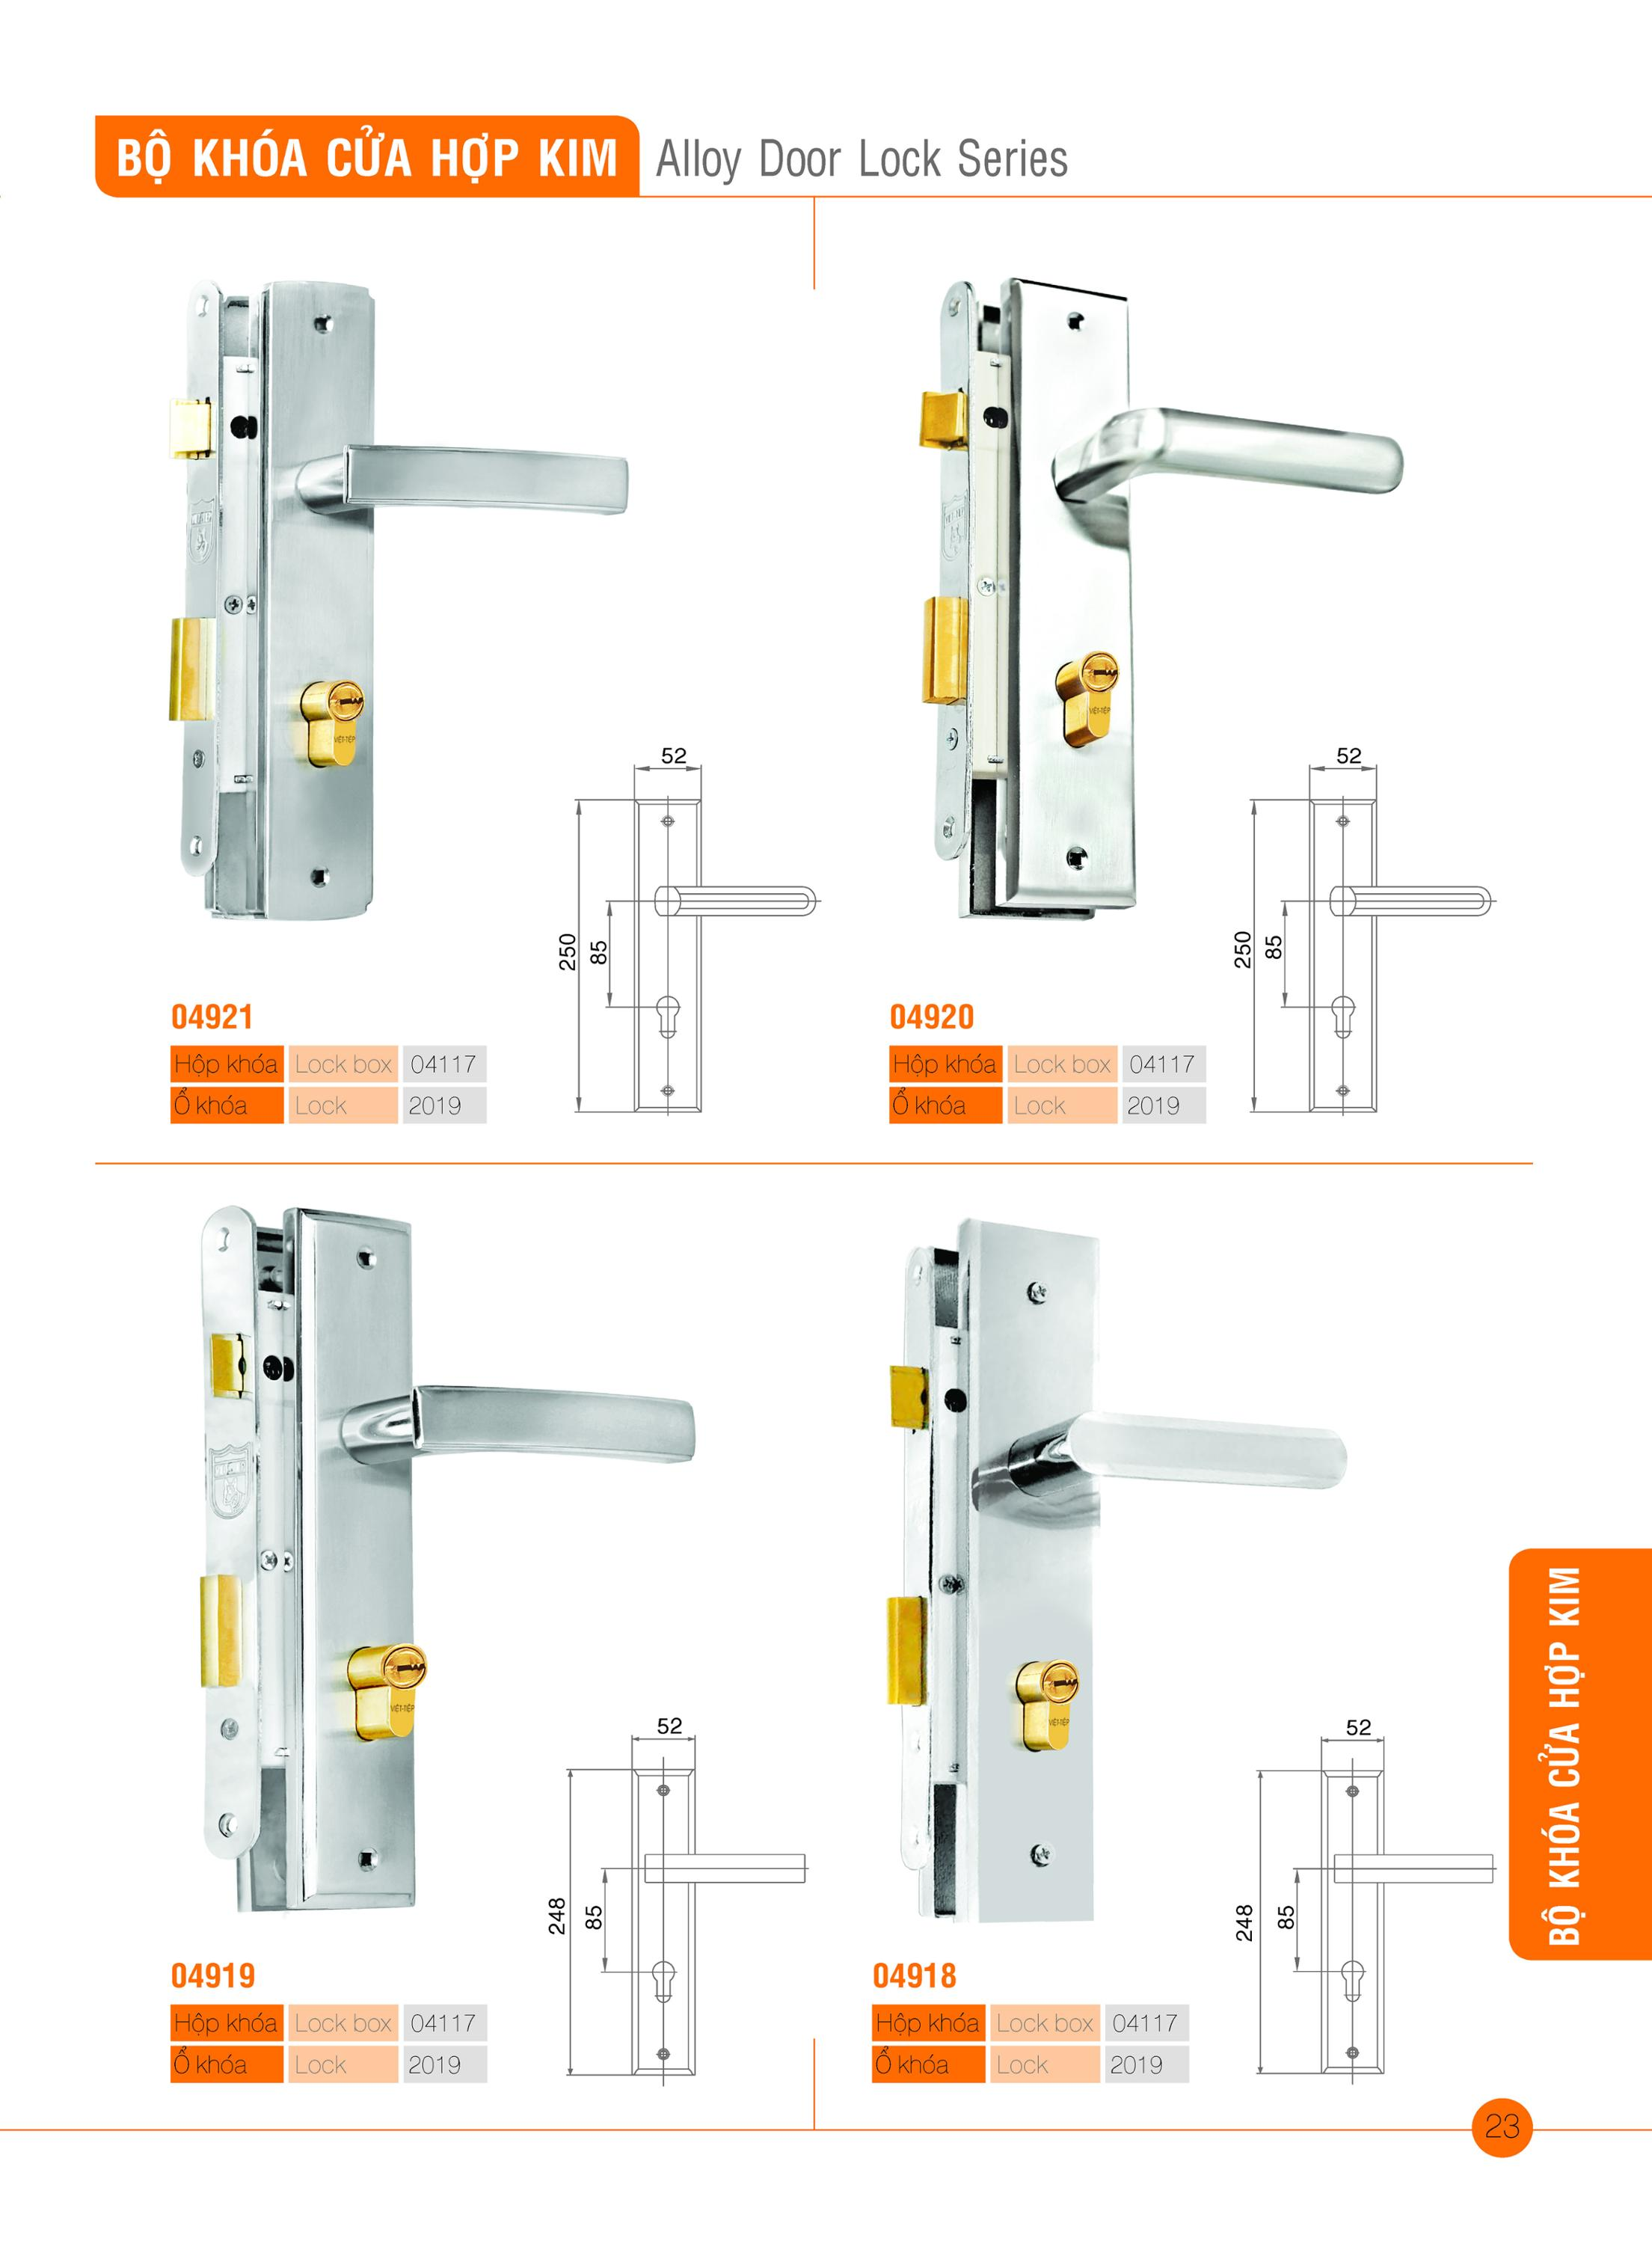 Alloy door lock series (Lock 2019)